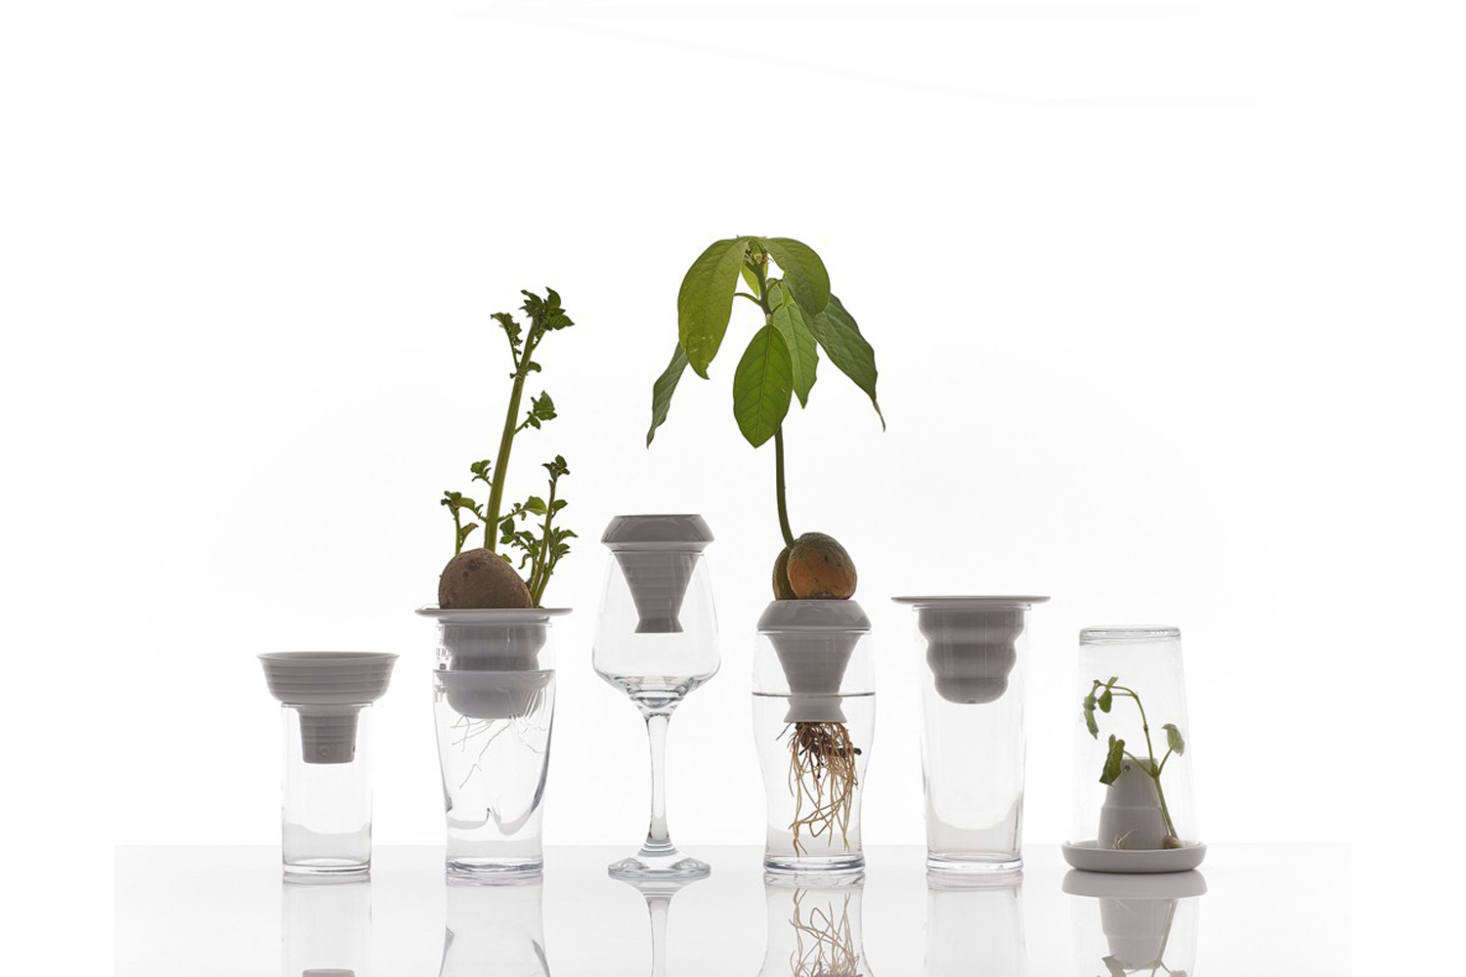 For the countertop seed sprouter, the Alicja Patanowska-designed Porcelain Hydroponic Plant Grower is a porcelain funnel that sits on the rim of a drinking glass for an instant hydroponic growing condition; $.5src=